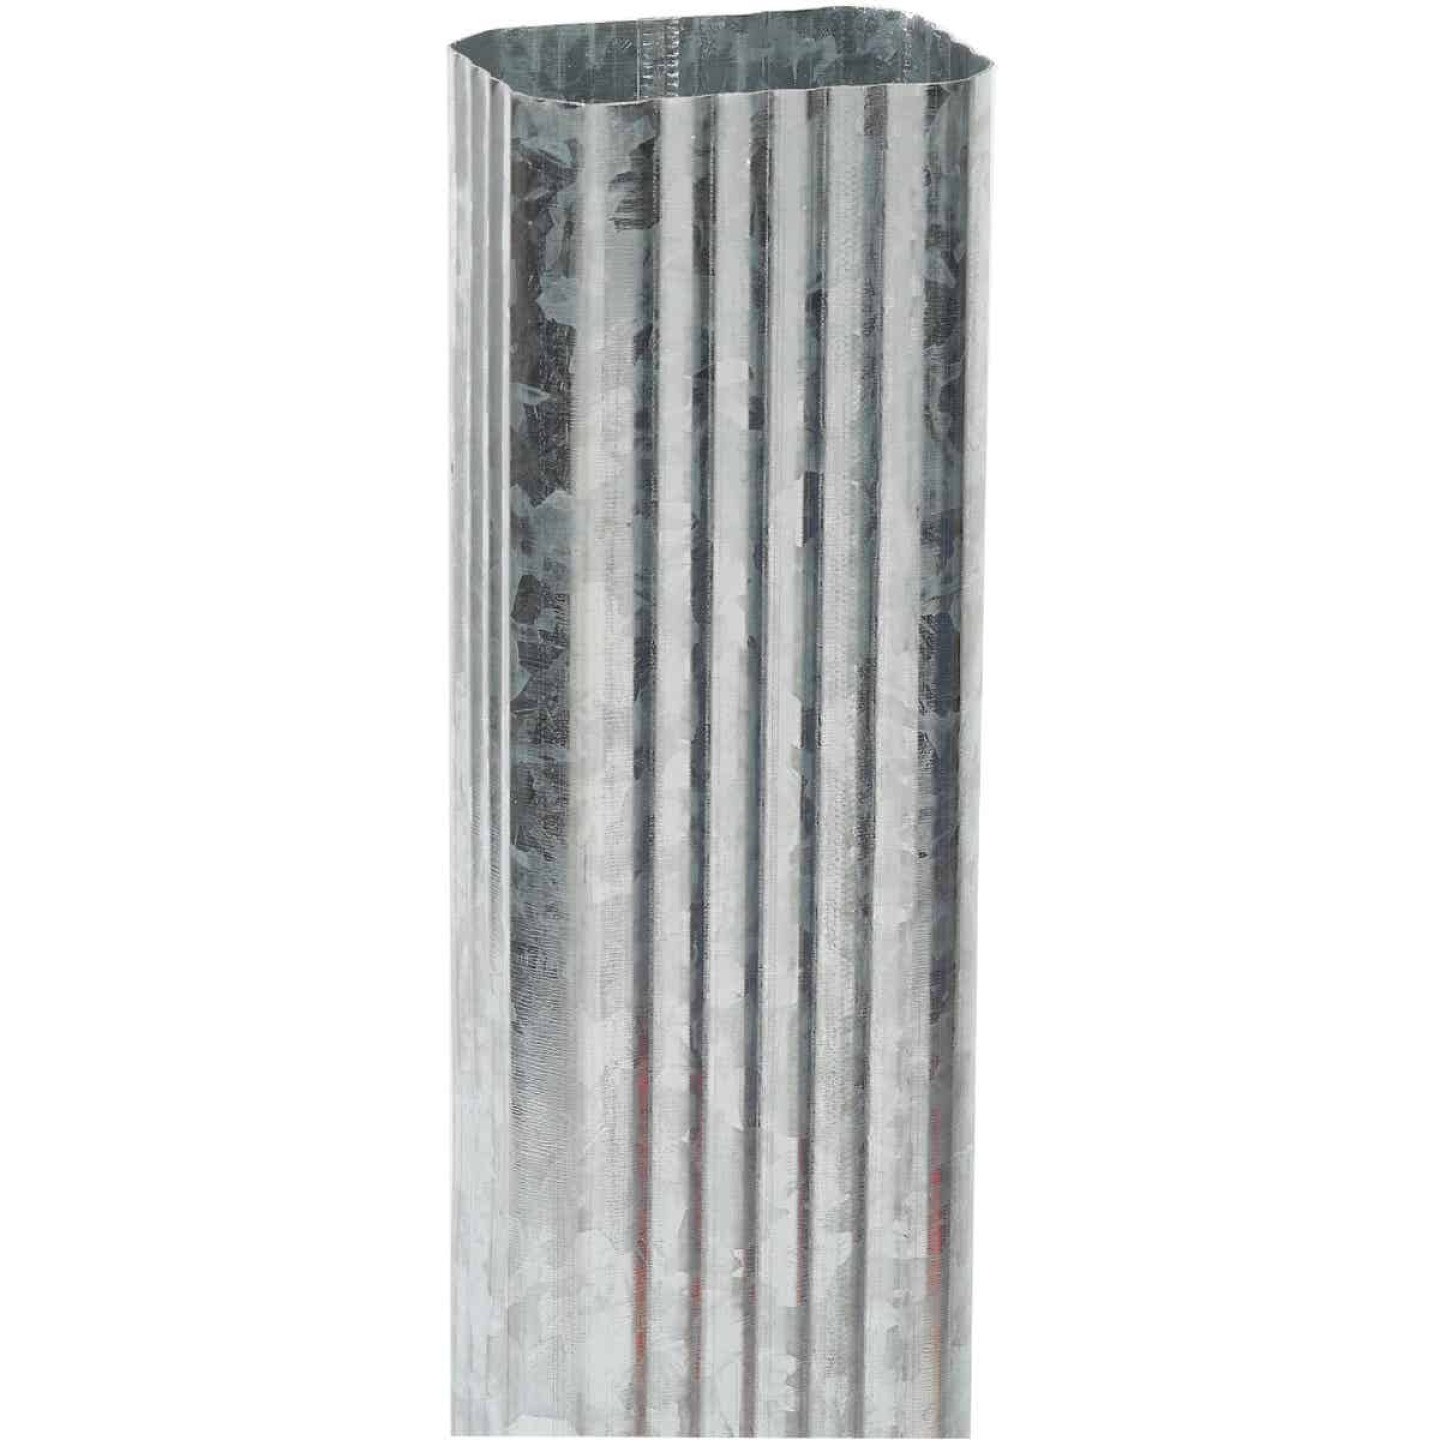 Amerimax 2 In. x 3 In. Galvanized Downspout Image 1